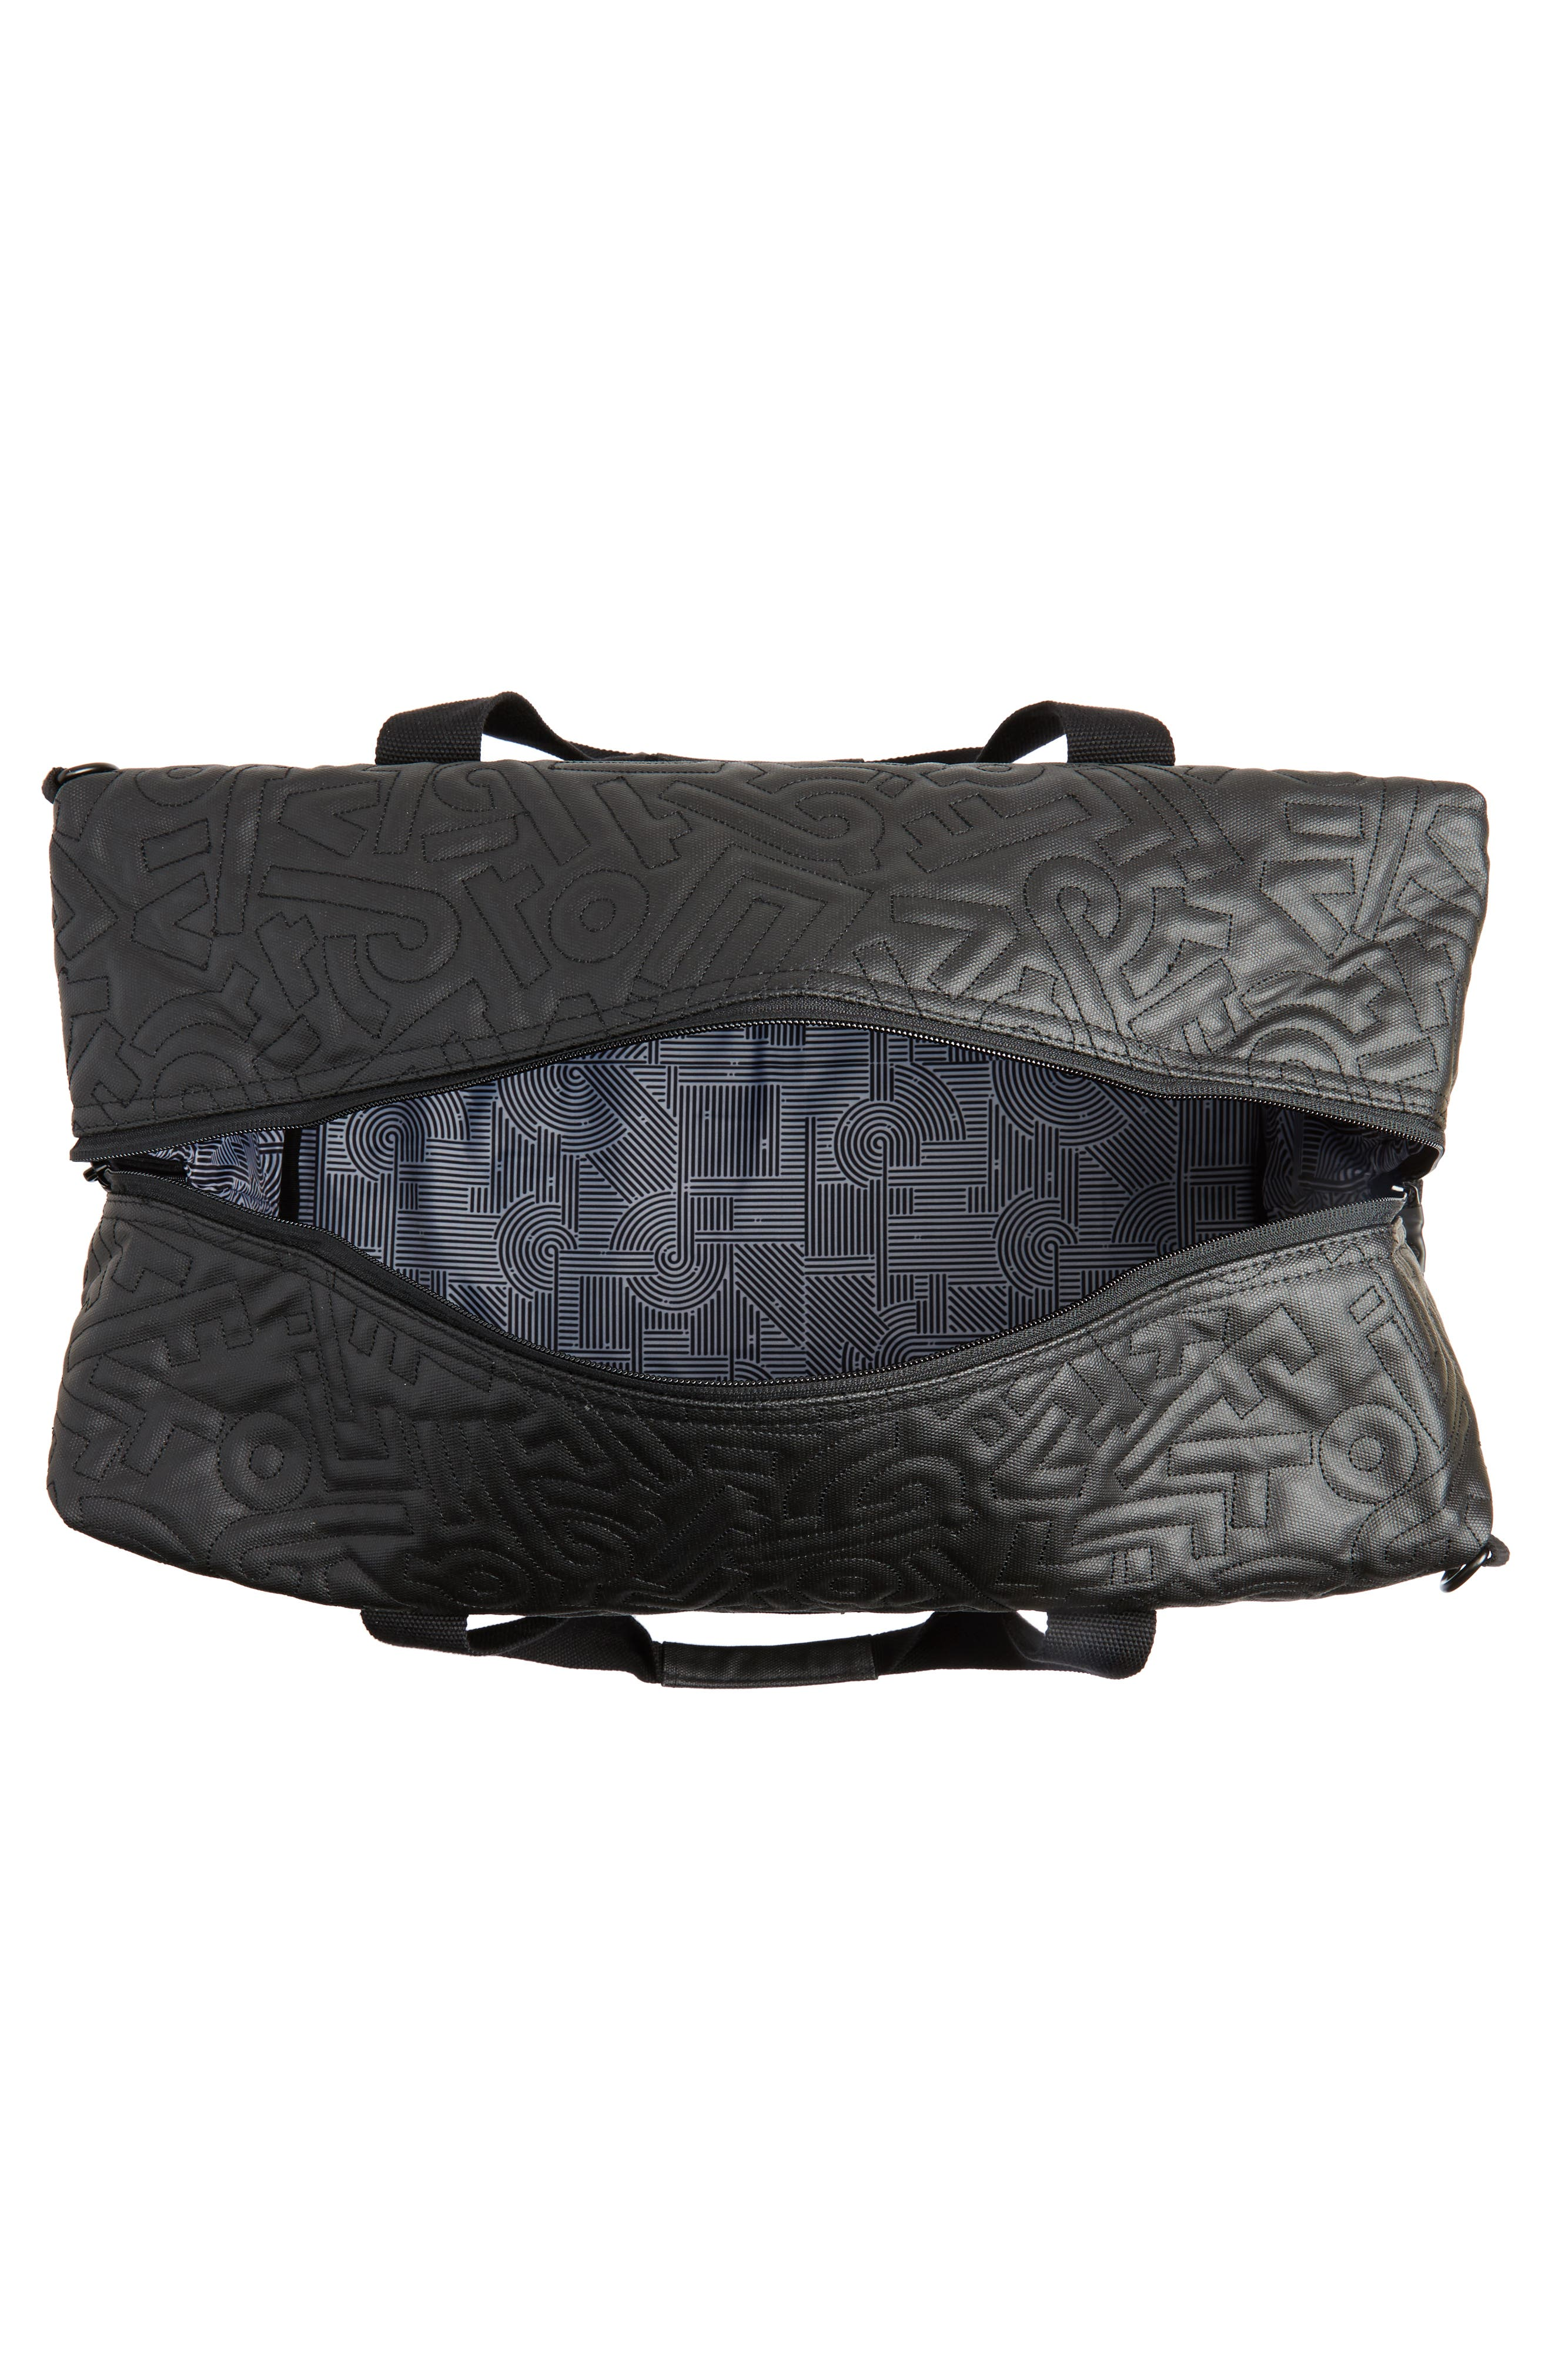 x Aaron De La Cruz Drifter Duffel Bag,                             Alternate thumbnail 4, color,                             Black Quilt